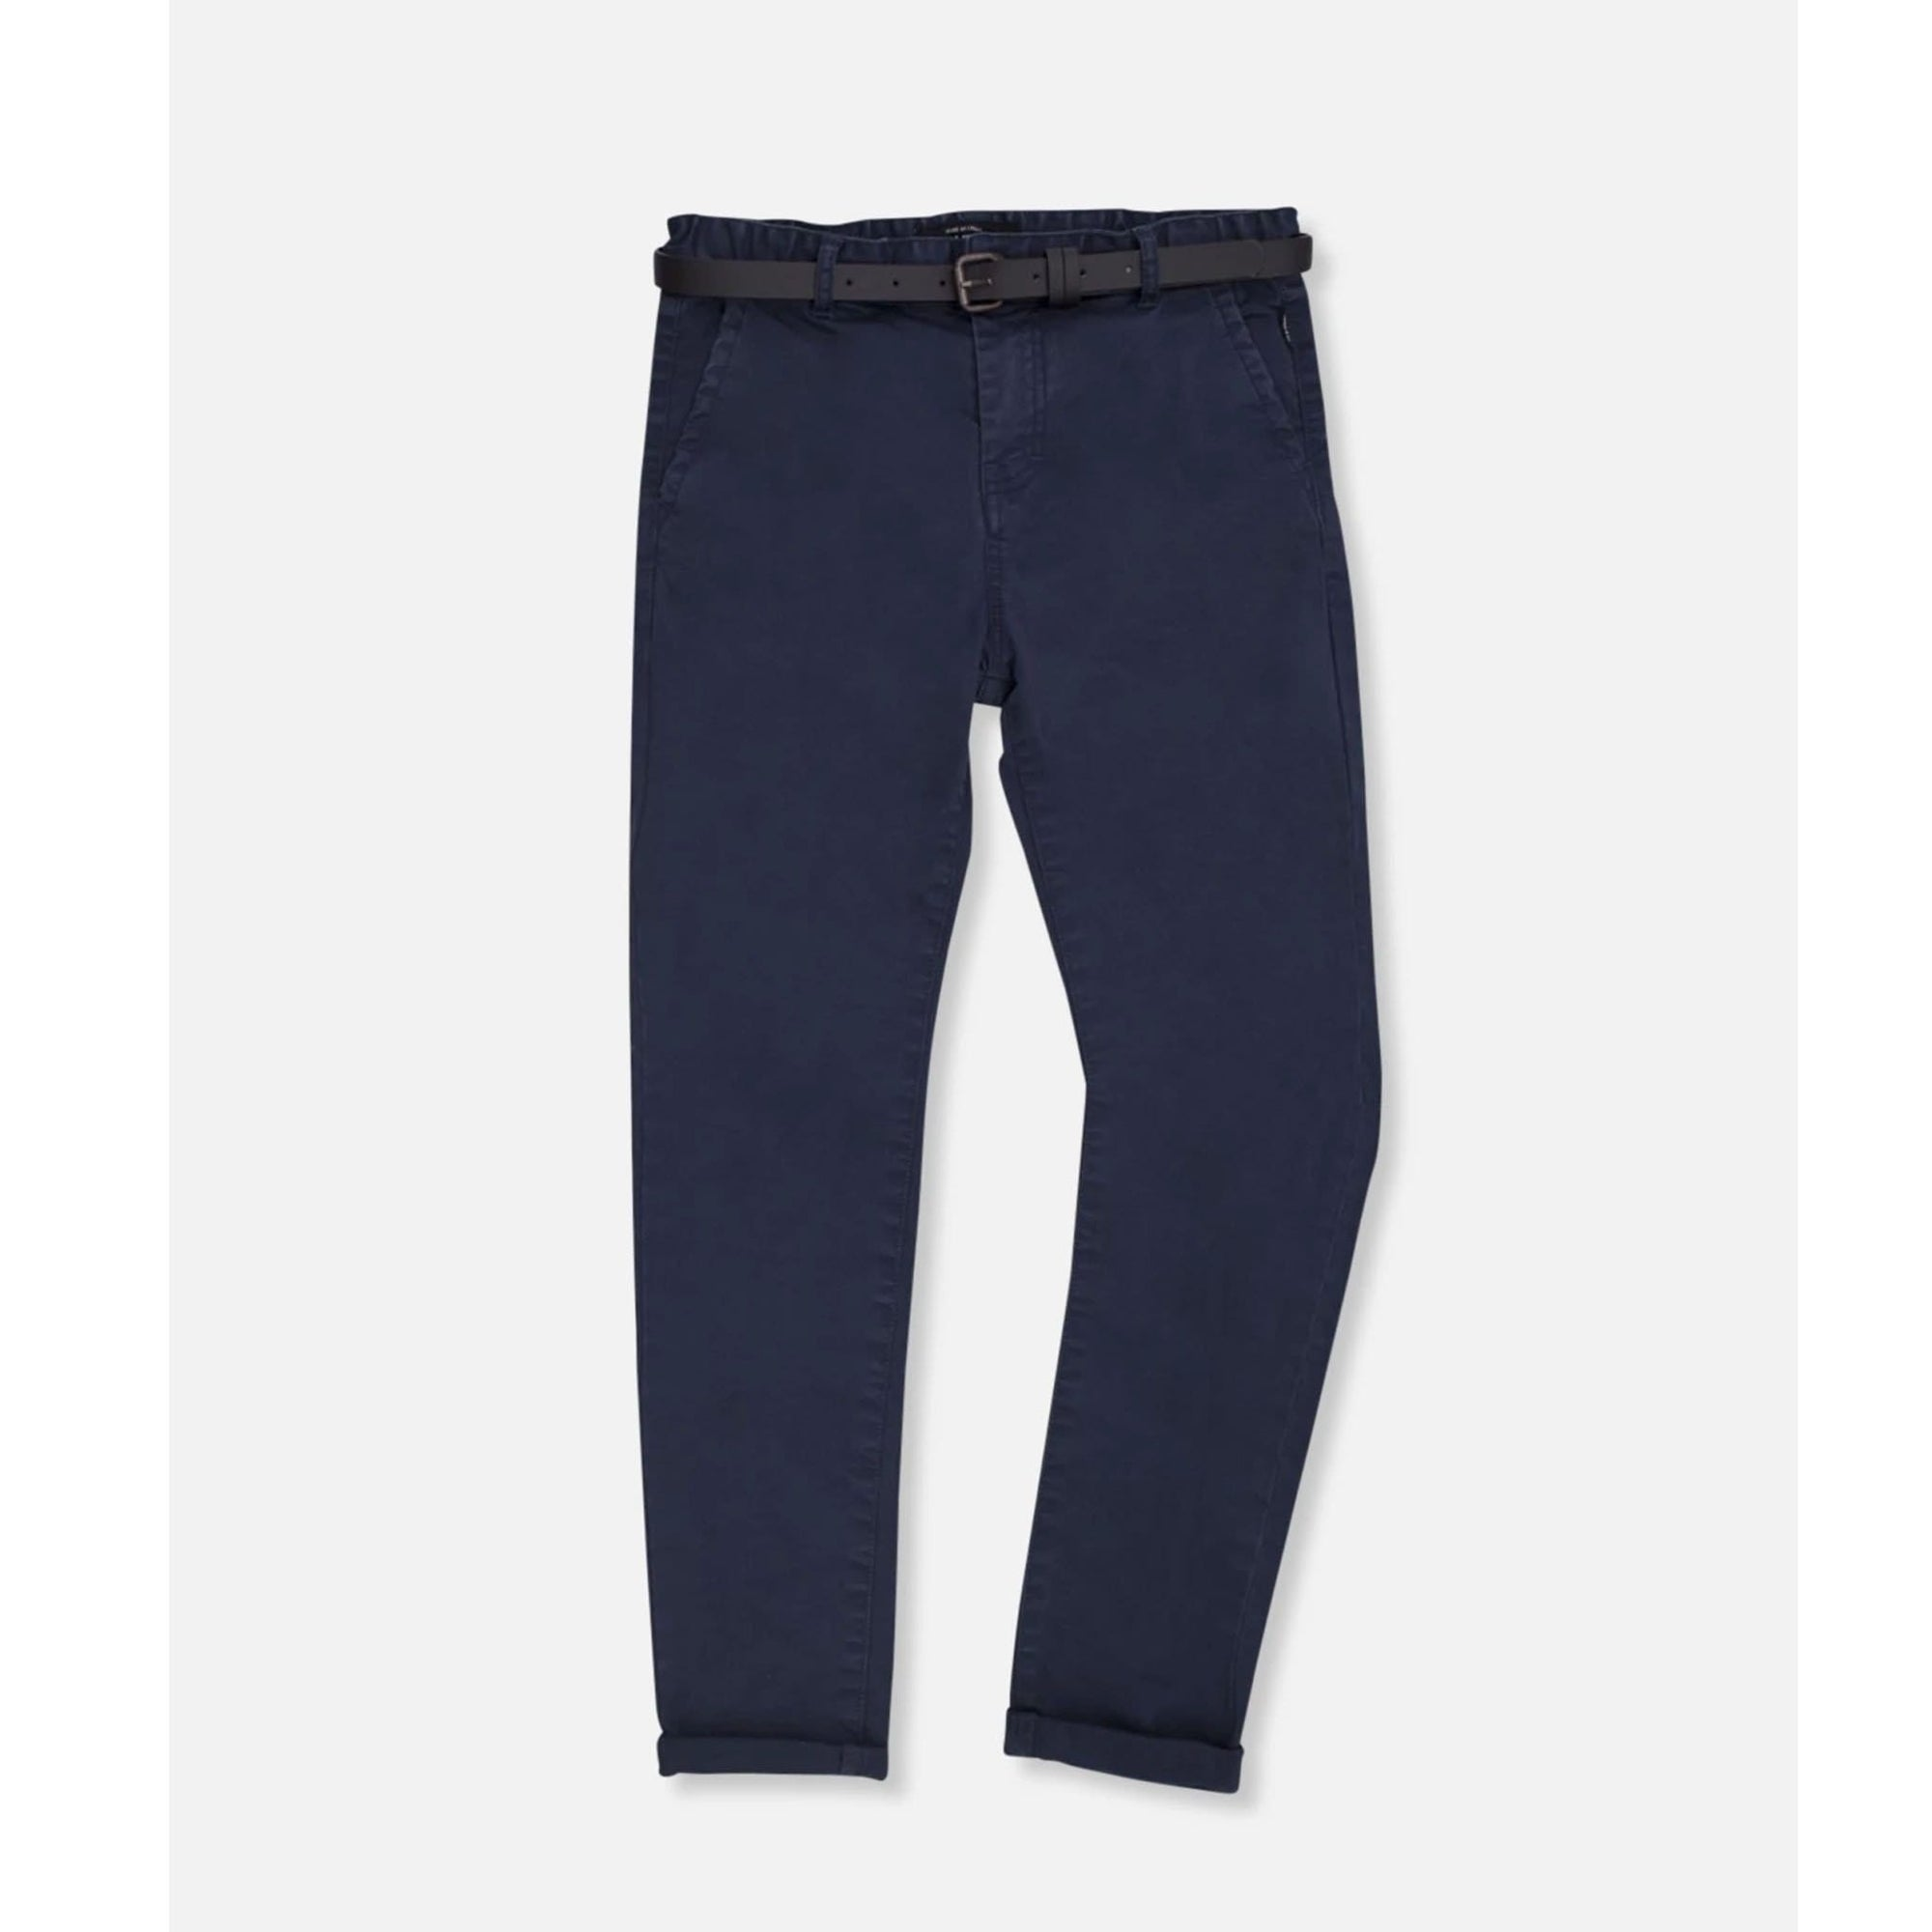 Industrie Kids Tweens Cuba Stretch Chino Navy (4637955260547)